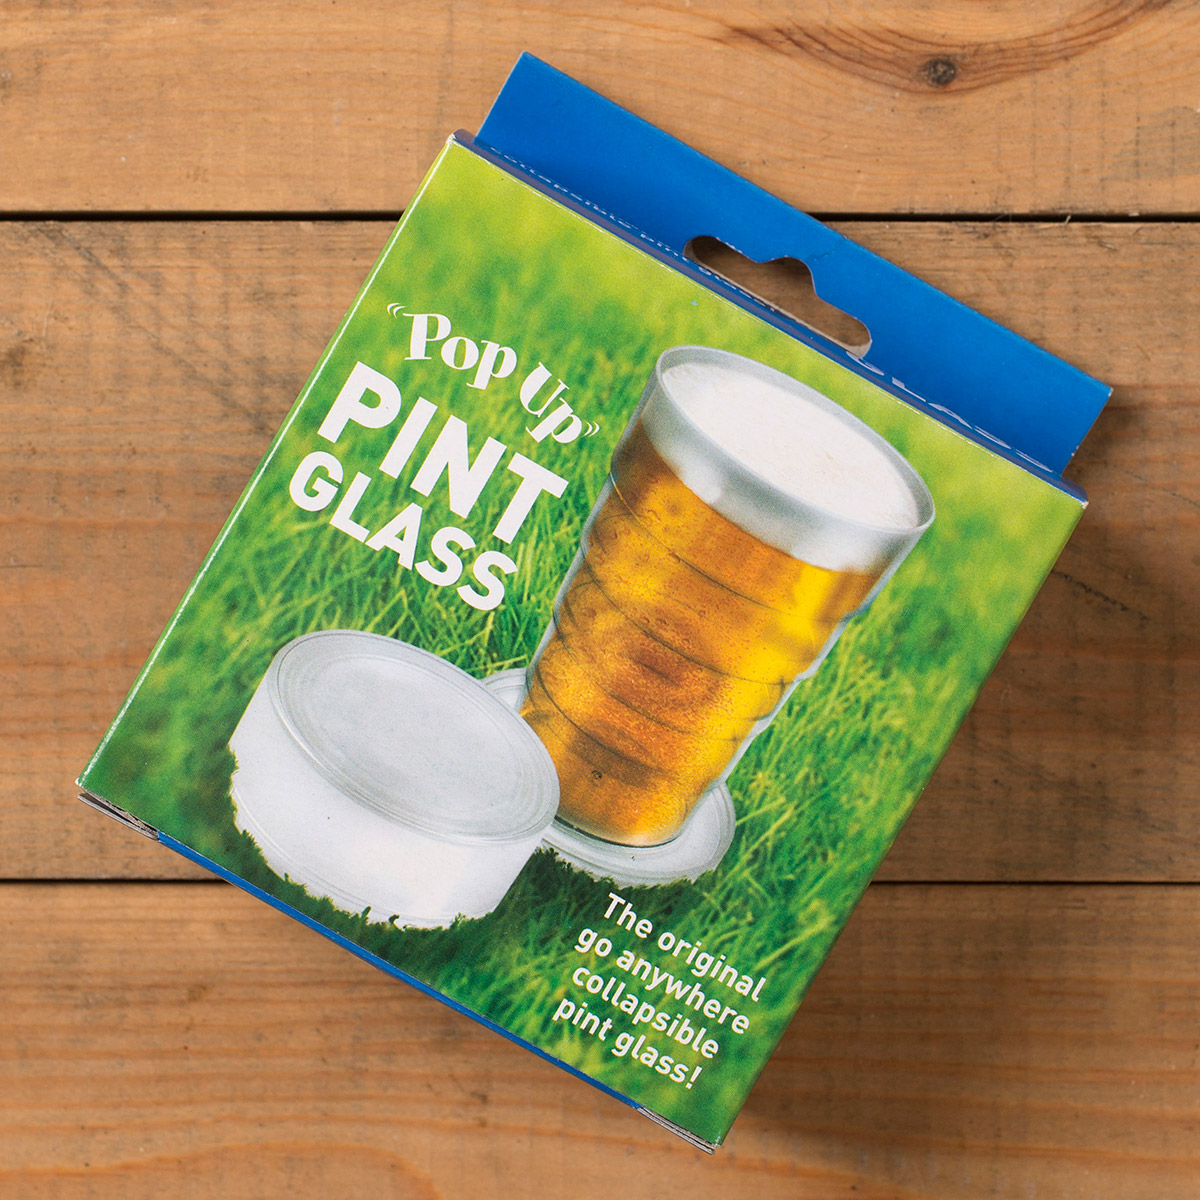 Bargain Pop Up Pint Glass Stockists